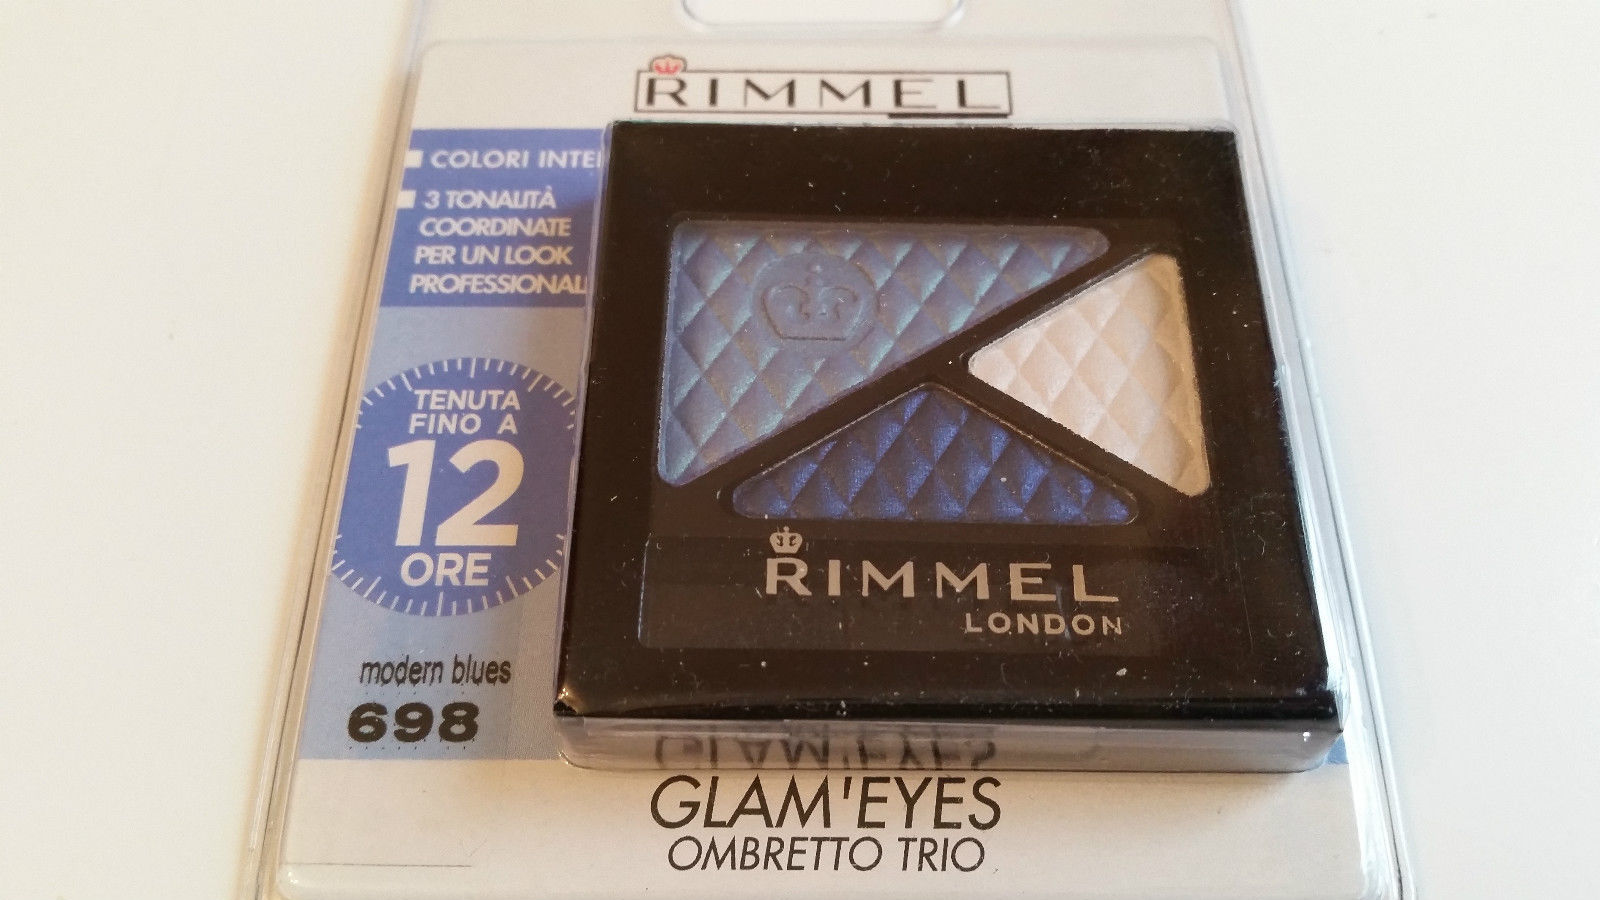 RIMMEL GLAM'EYES TRIO EYESHADOW - 698 MODERN BLUES